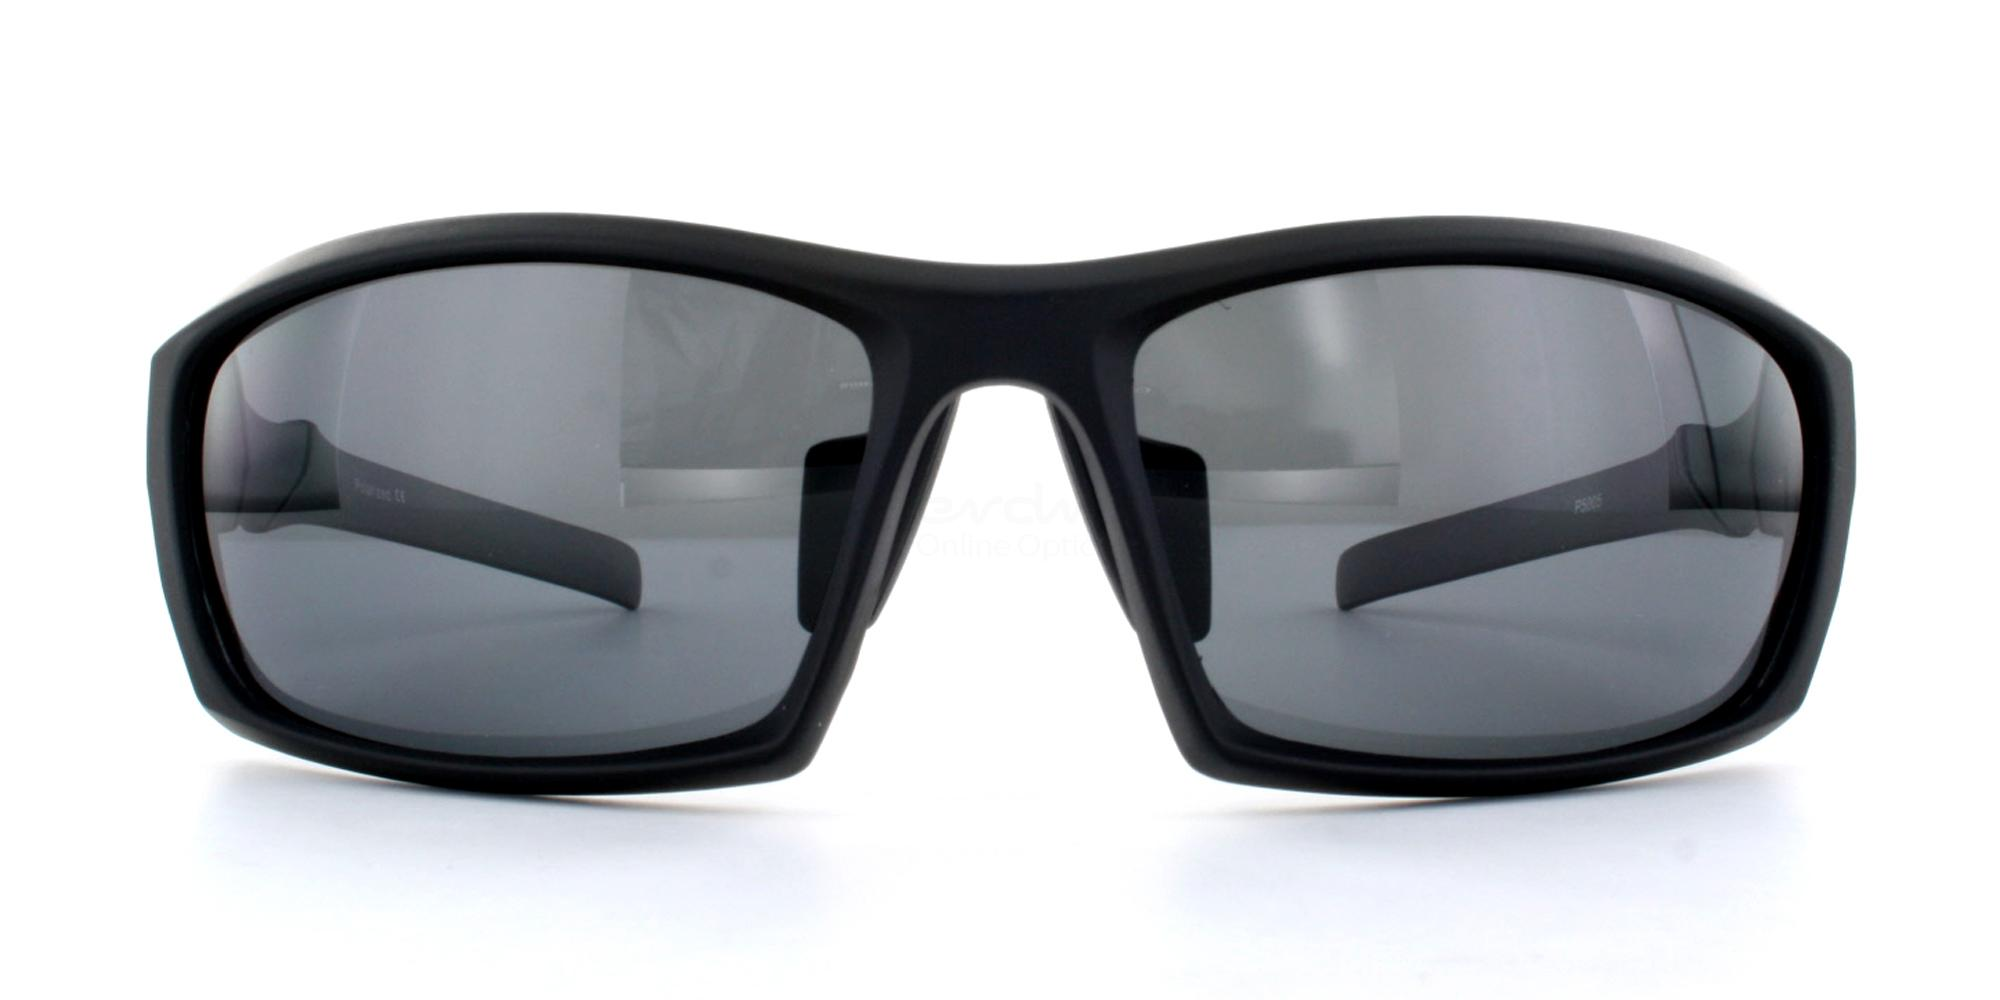 Matte Black + Grey Lens P5005 Sunglasses, Aero